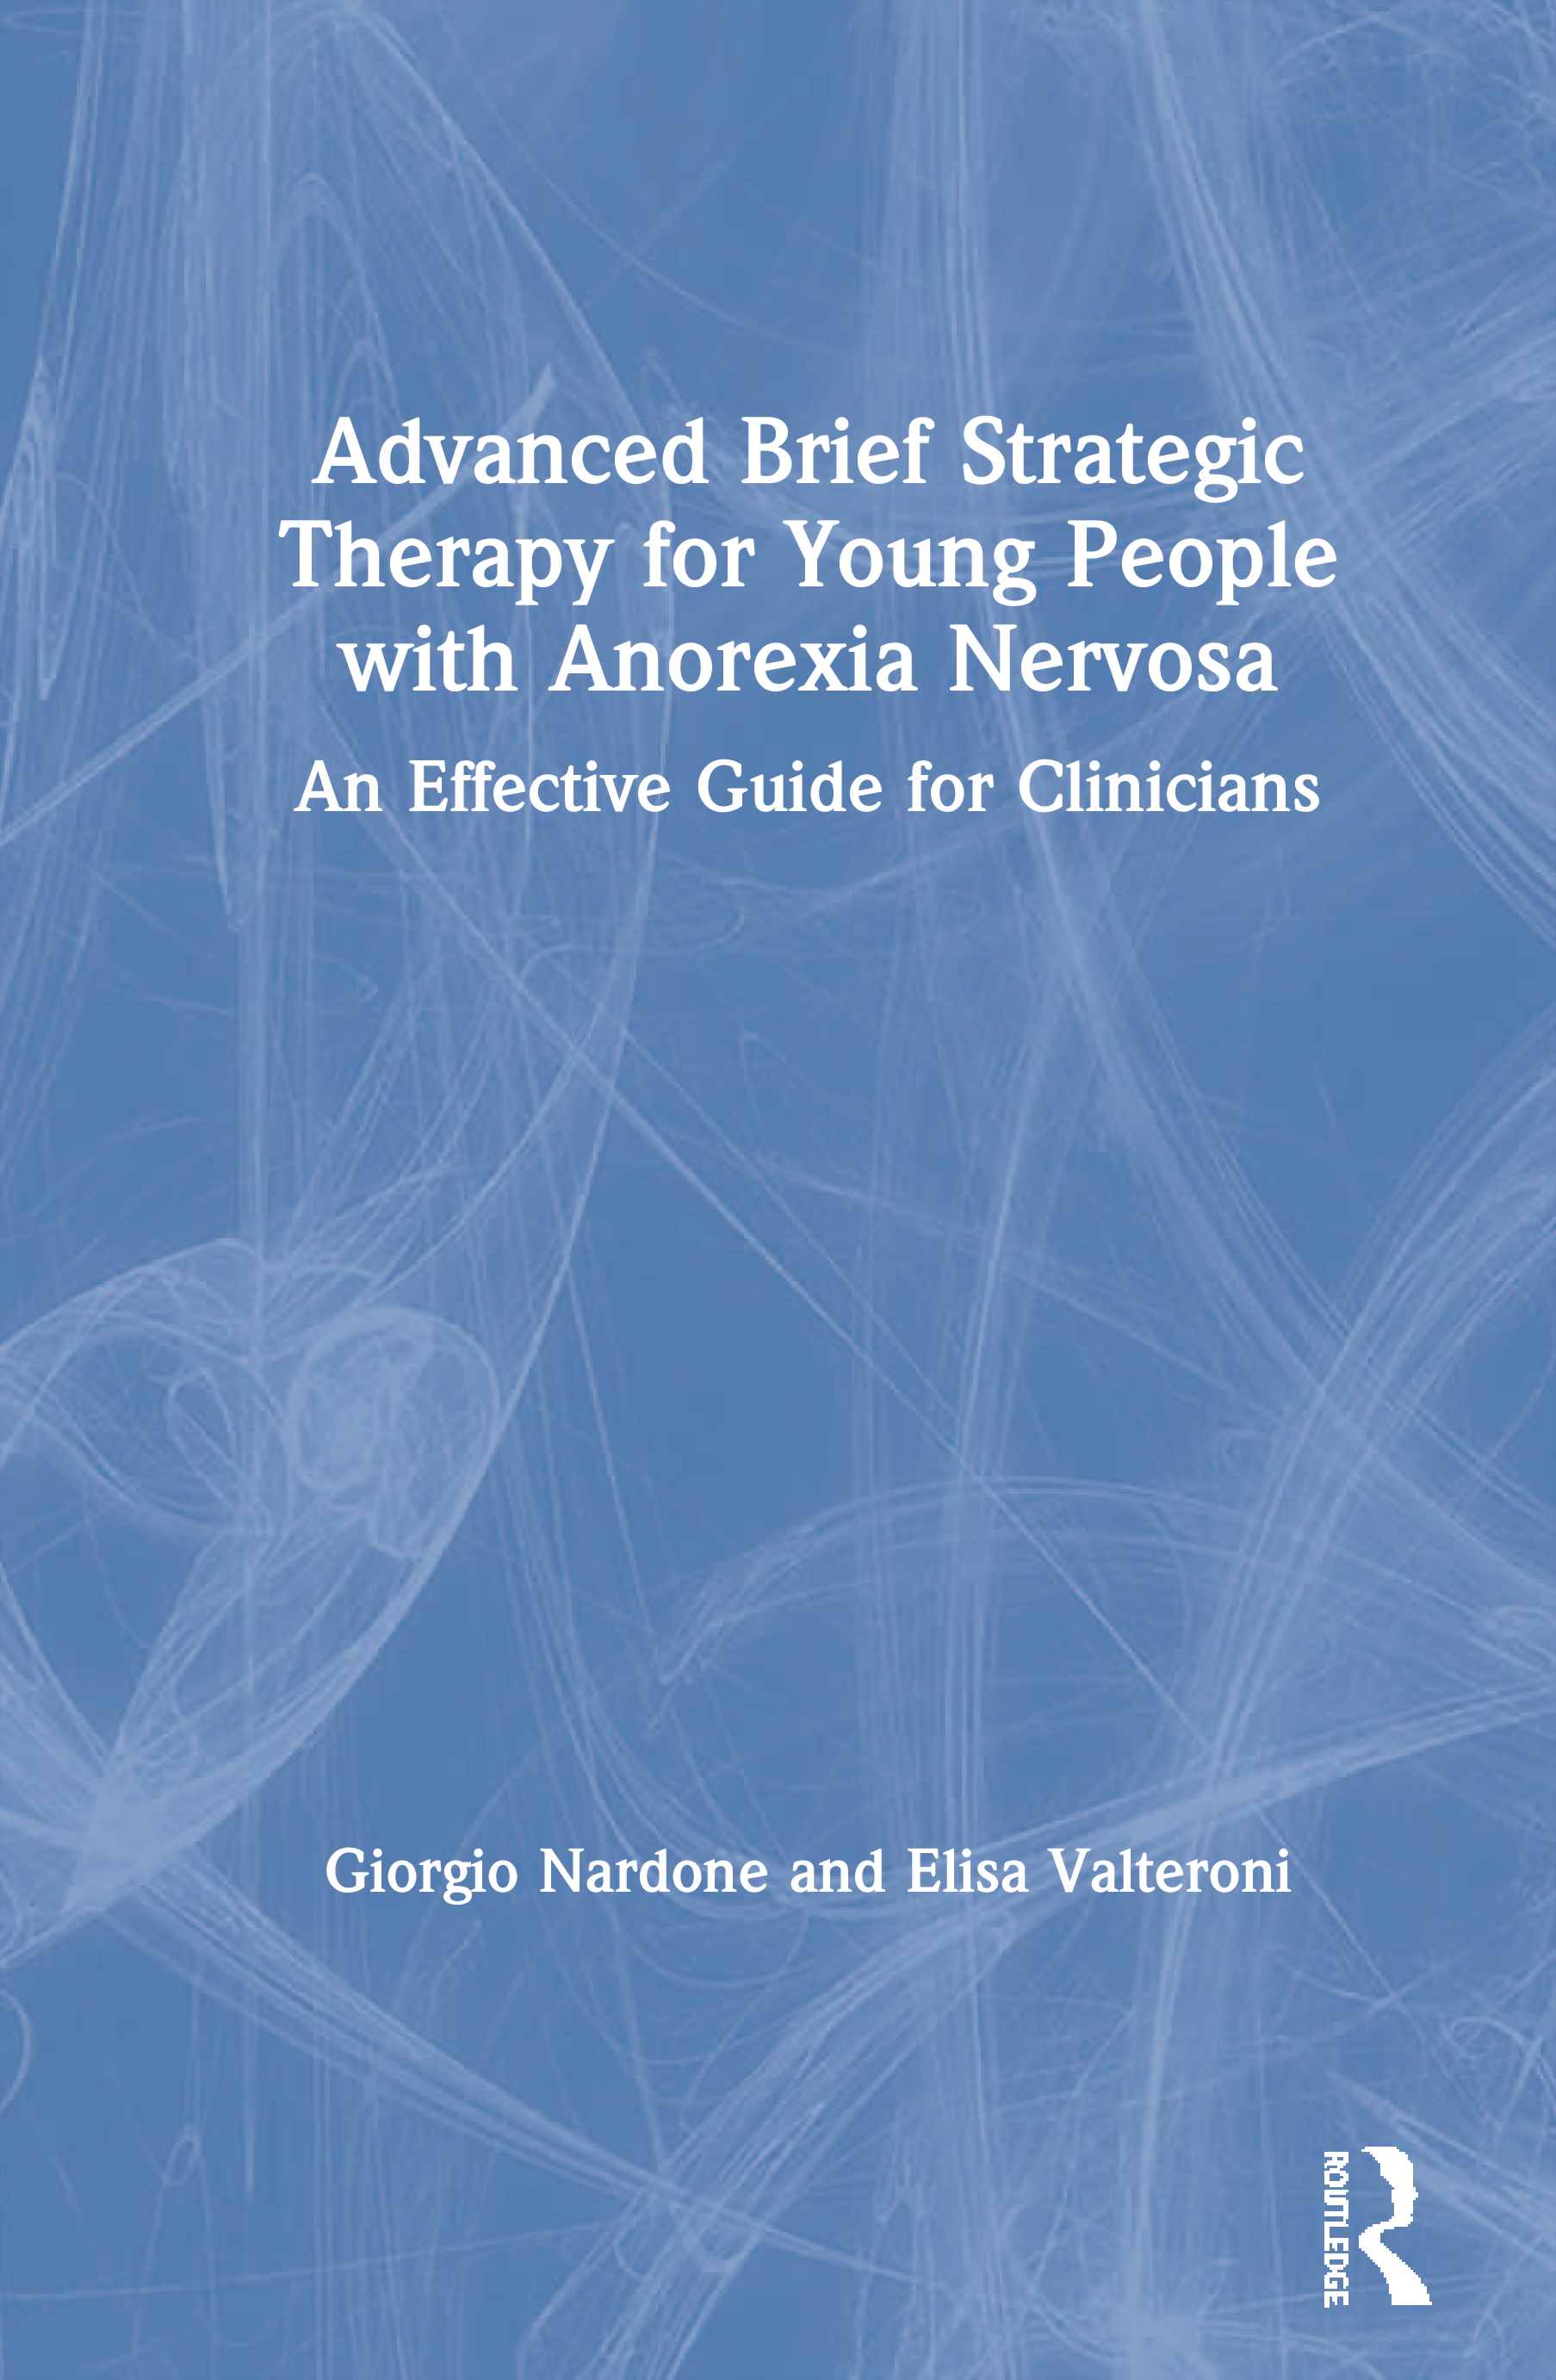 Advanced Brief Strategic Therapy for Young People with Anorexia Nervosa: An Effective Guide for Clinicians book cover